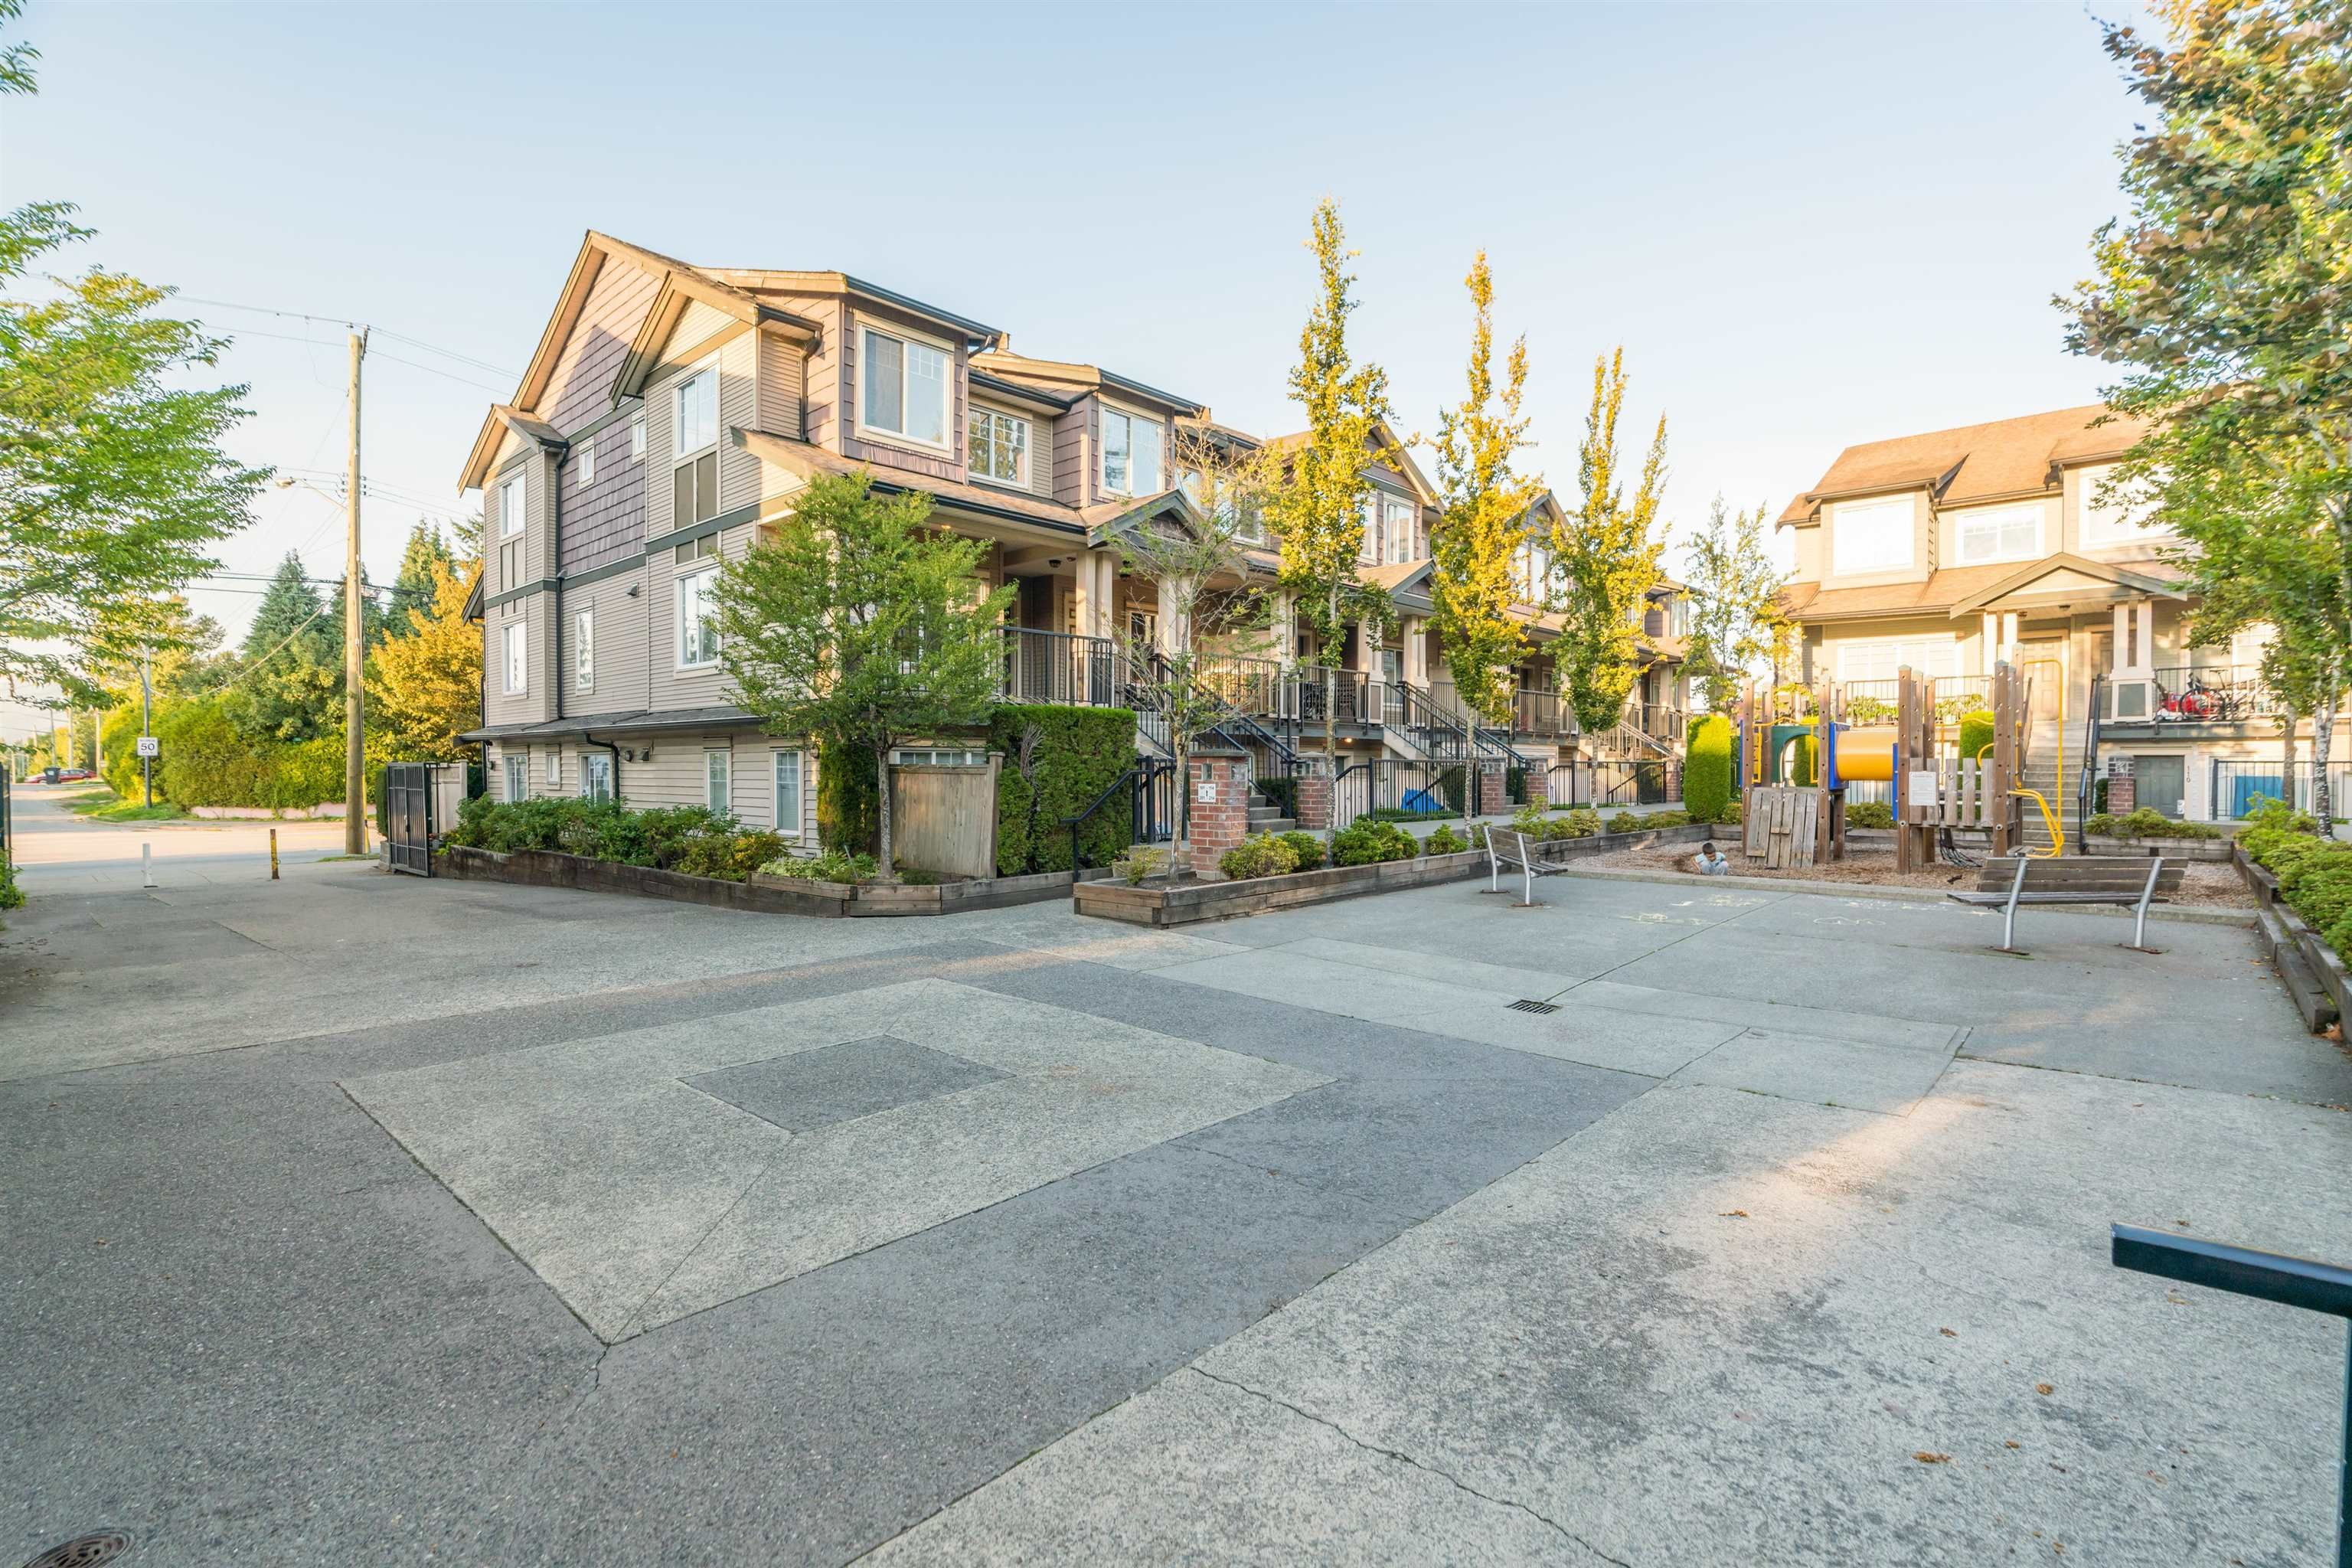 Main Photo: 138 13958 108 Avenue in Surrey: Whalley Townhouse for sale (North Surrey)  : MLS®# R2625099